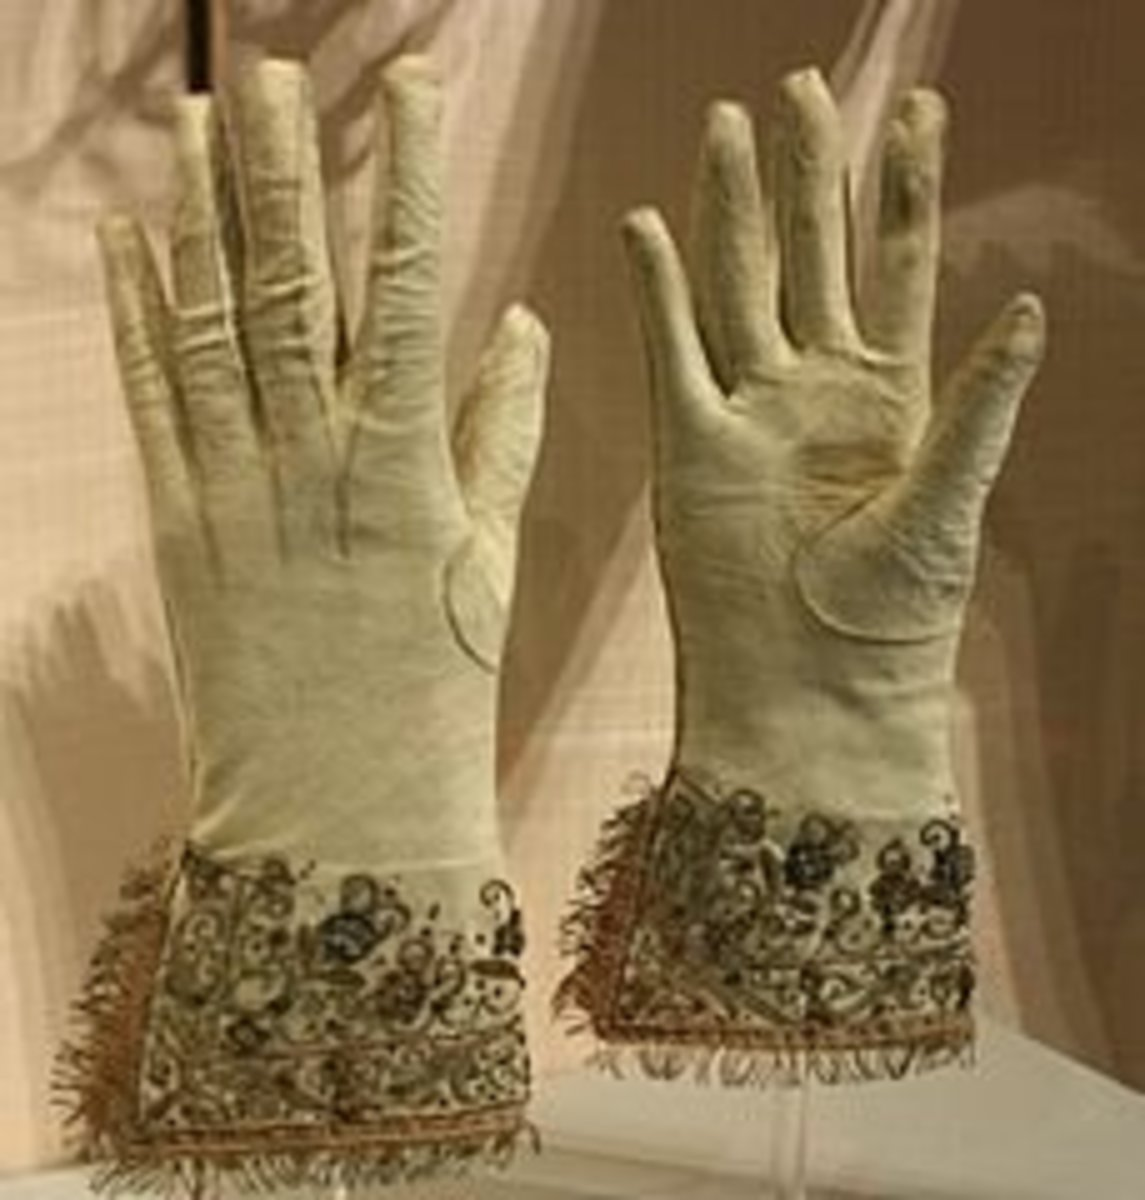 Embroidery on Gloves in Museum